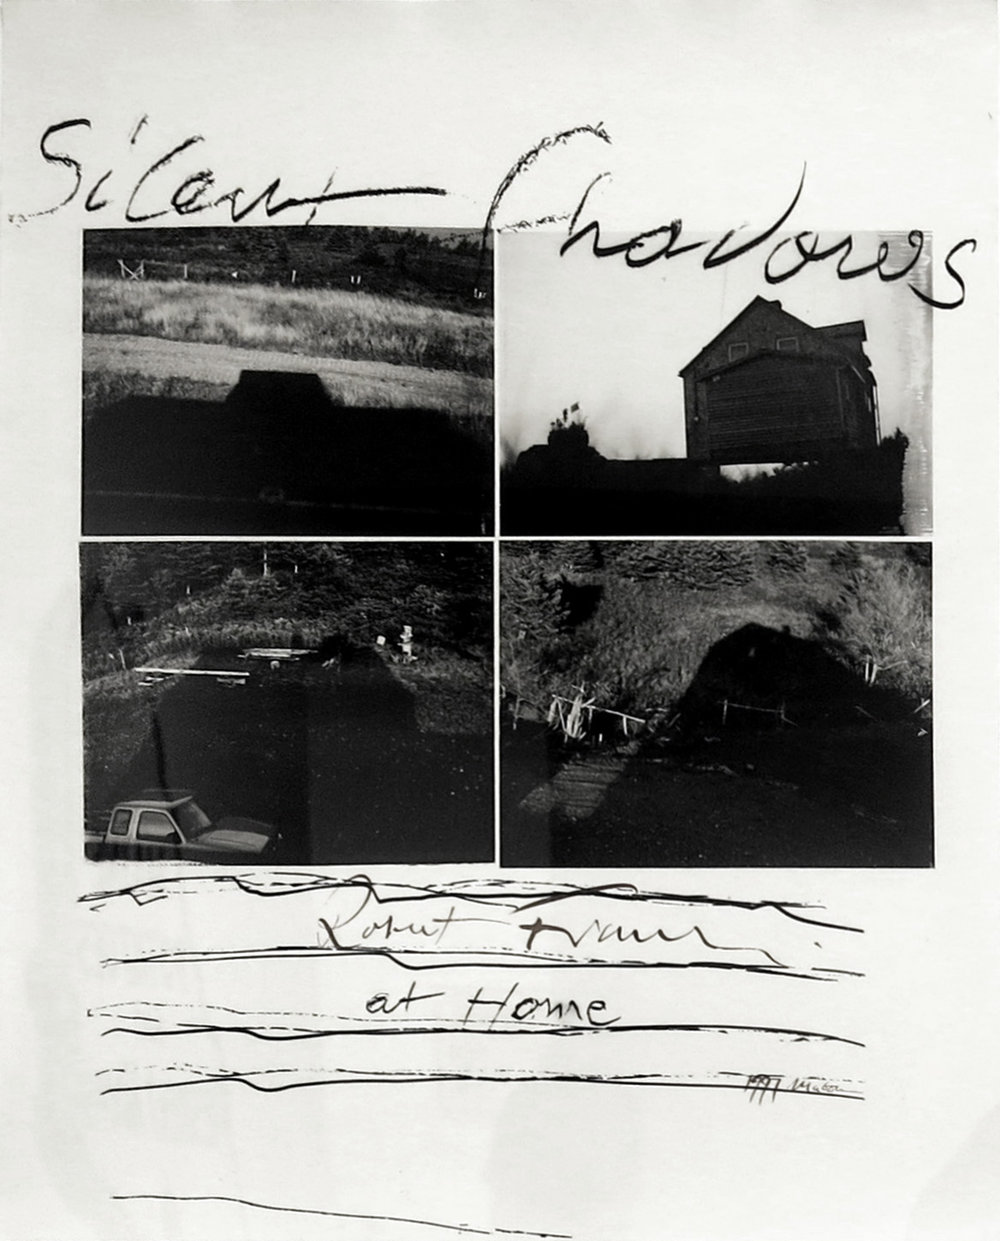 Robert Frank,  Silent Shadows, Mabou,  gelatin silver print enlarged from 4 Polaroid negatives, with text, 22 3/4h x 18 3/4w in.